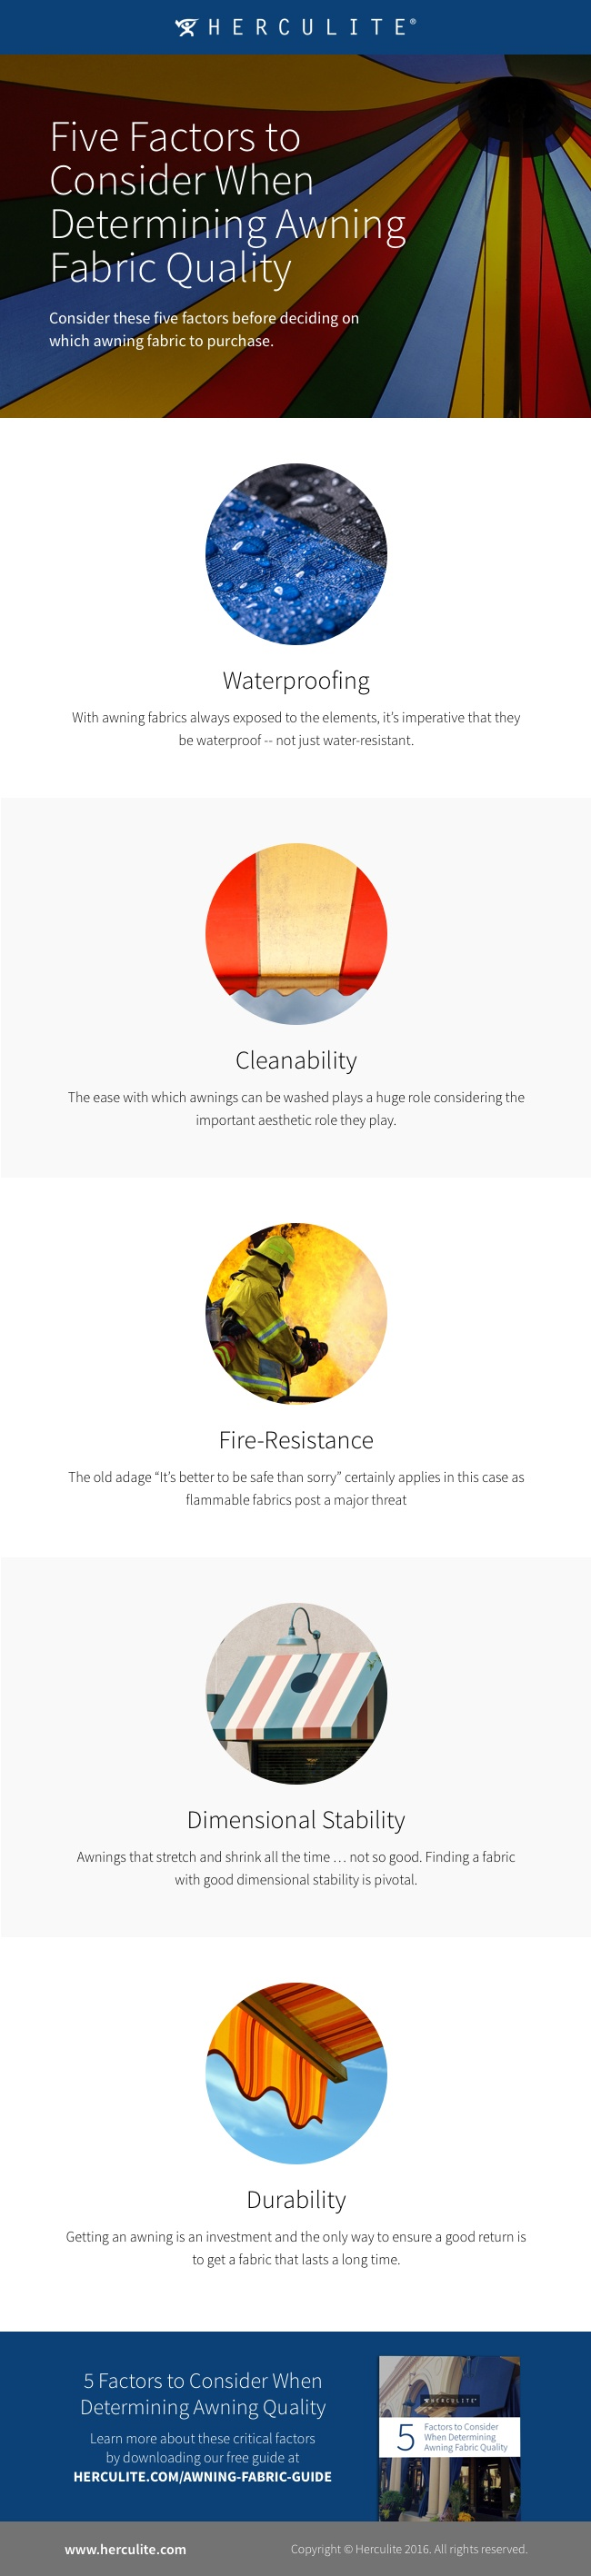 Five_Factors_to_Consider_When_Determining_Awning_Quality_Infographic.jpg